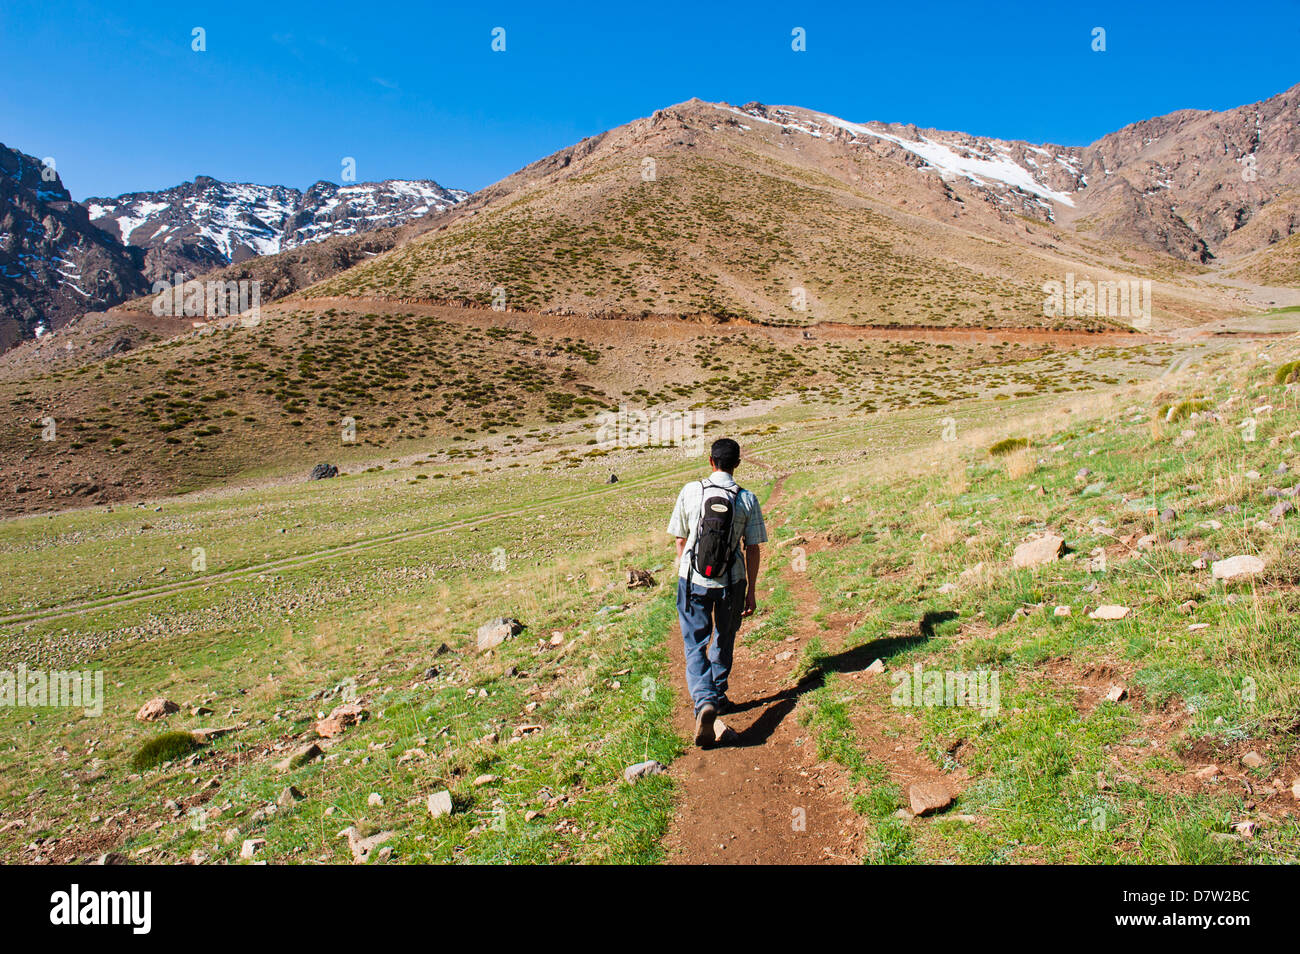 Trekking tour guide walking at Oukaimeden ski resort in summer, High Atlas Mountains, Morocco, North Africa - Stock Image